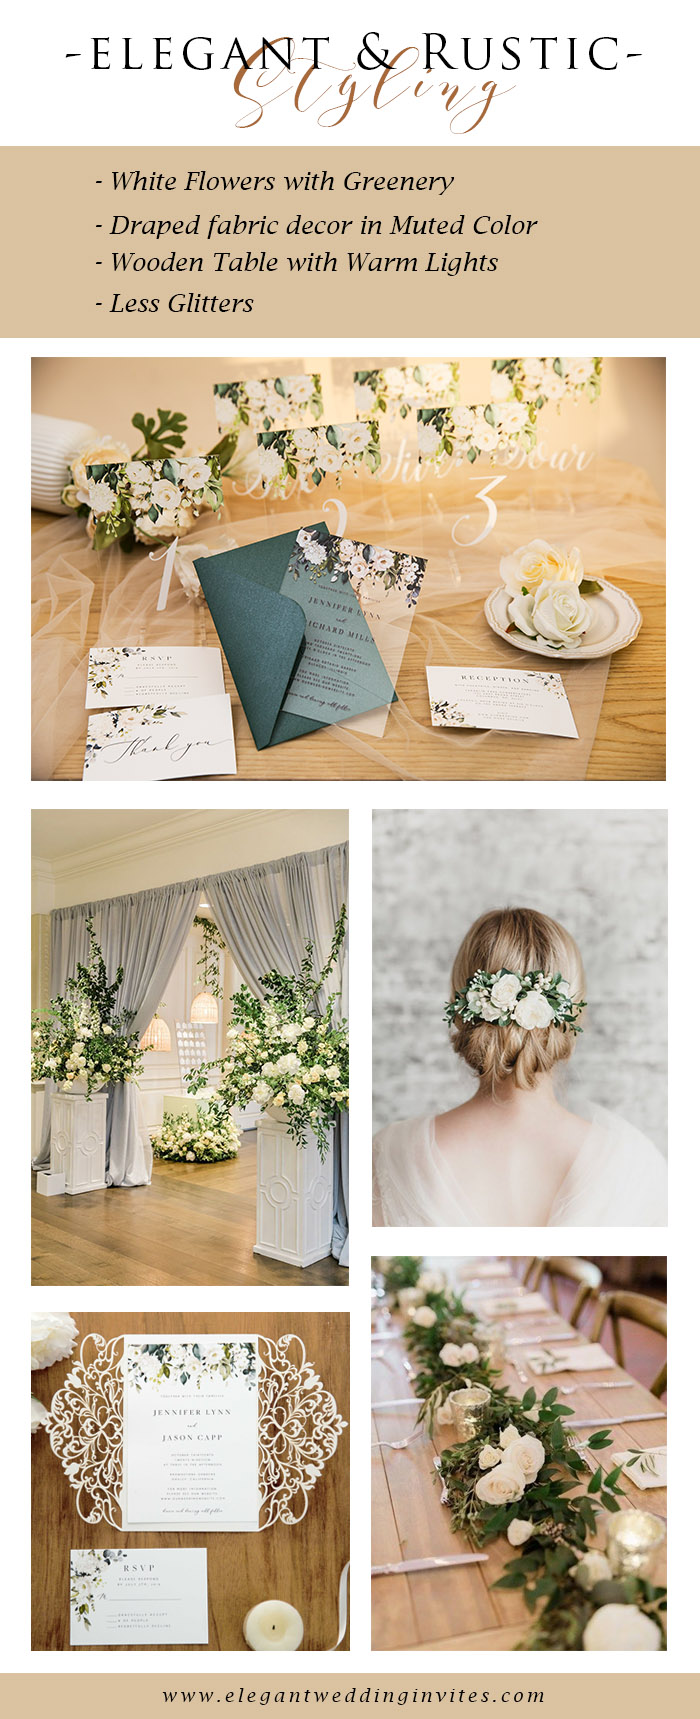 elegant rustic chic ivory white and greenery wedding color theme